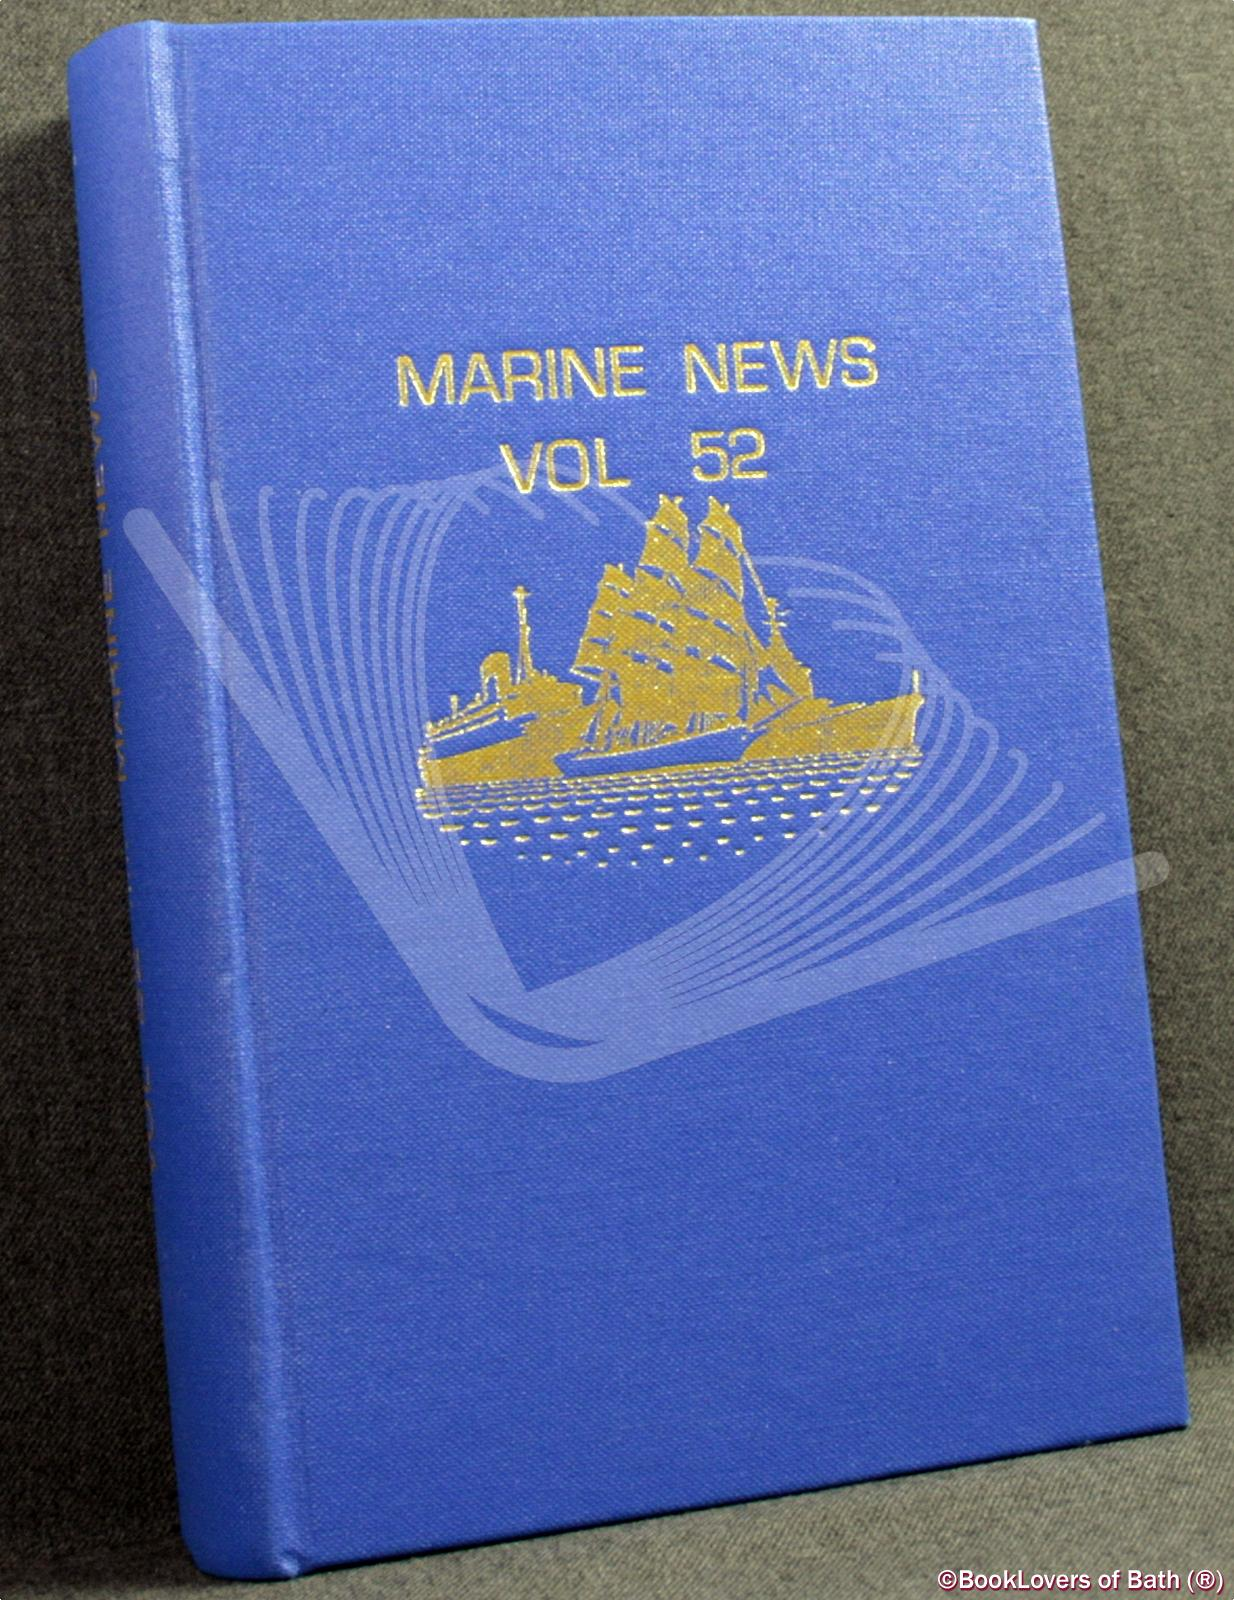 Marine News: Journal of the World Ship Society Volume 52 No. 1 January 1998 - Volume 52 No. 12 December 1998 - Edited By Kevin O'Donoghue & Roy Fenton